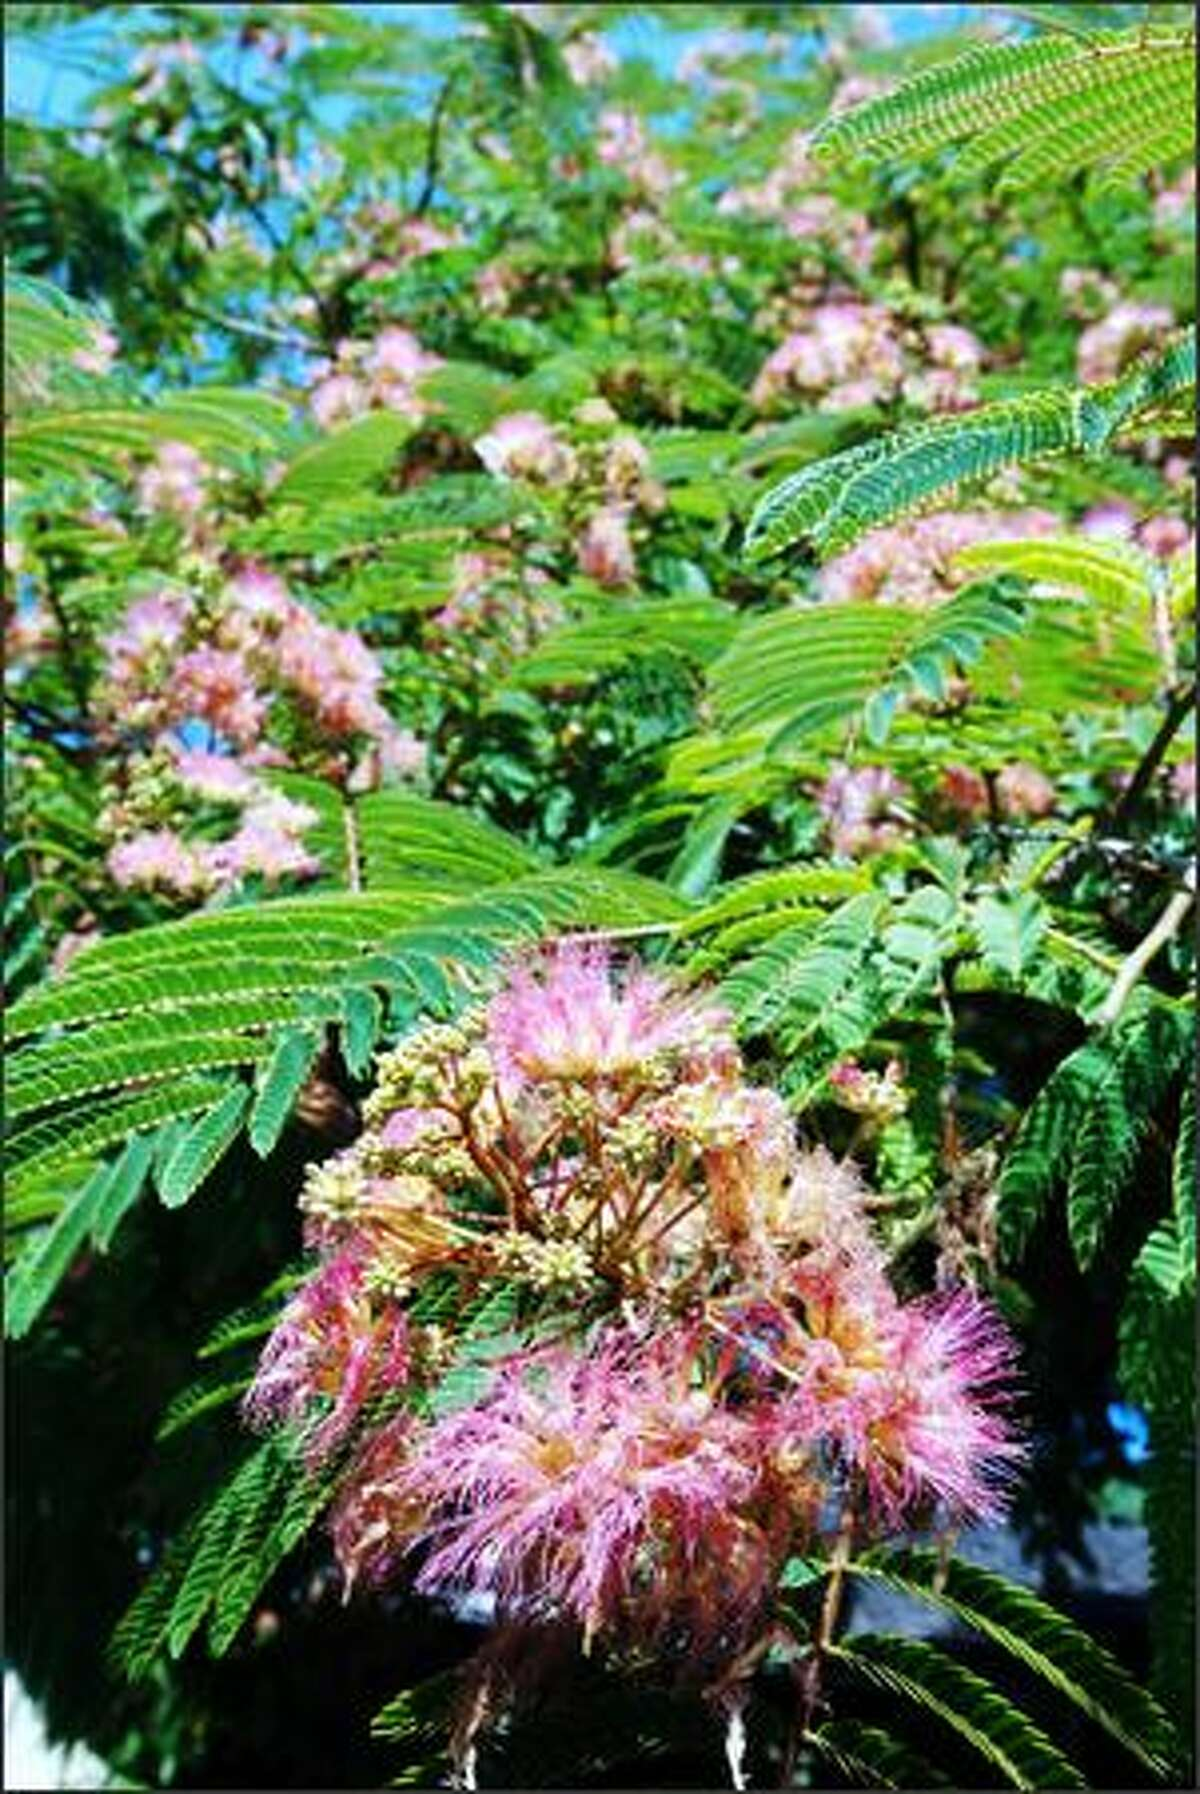 A smaller spreading tree such as mimosa (Albizia julibrissin) will grow tall enough to shade a window.